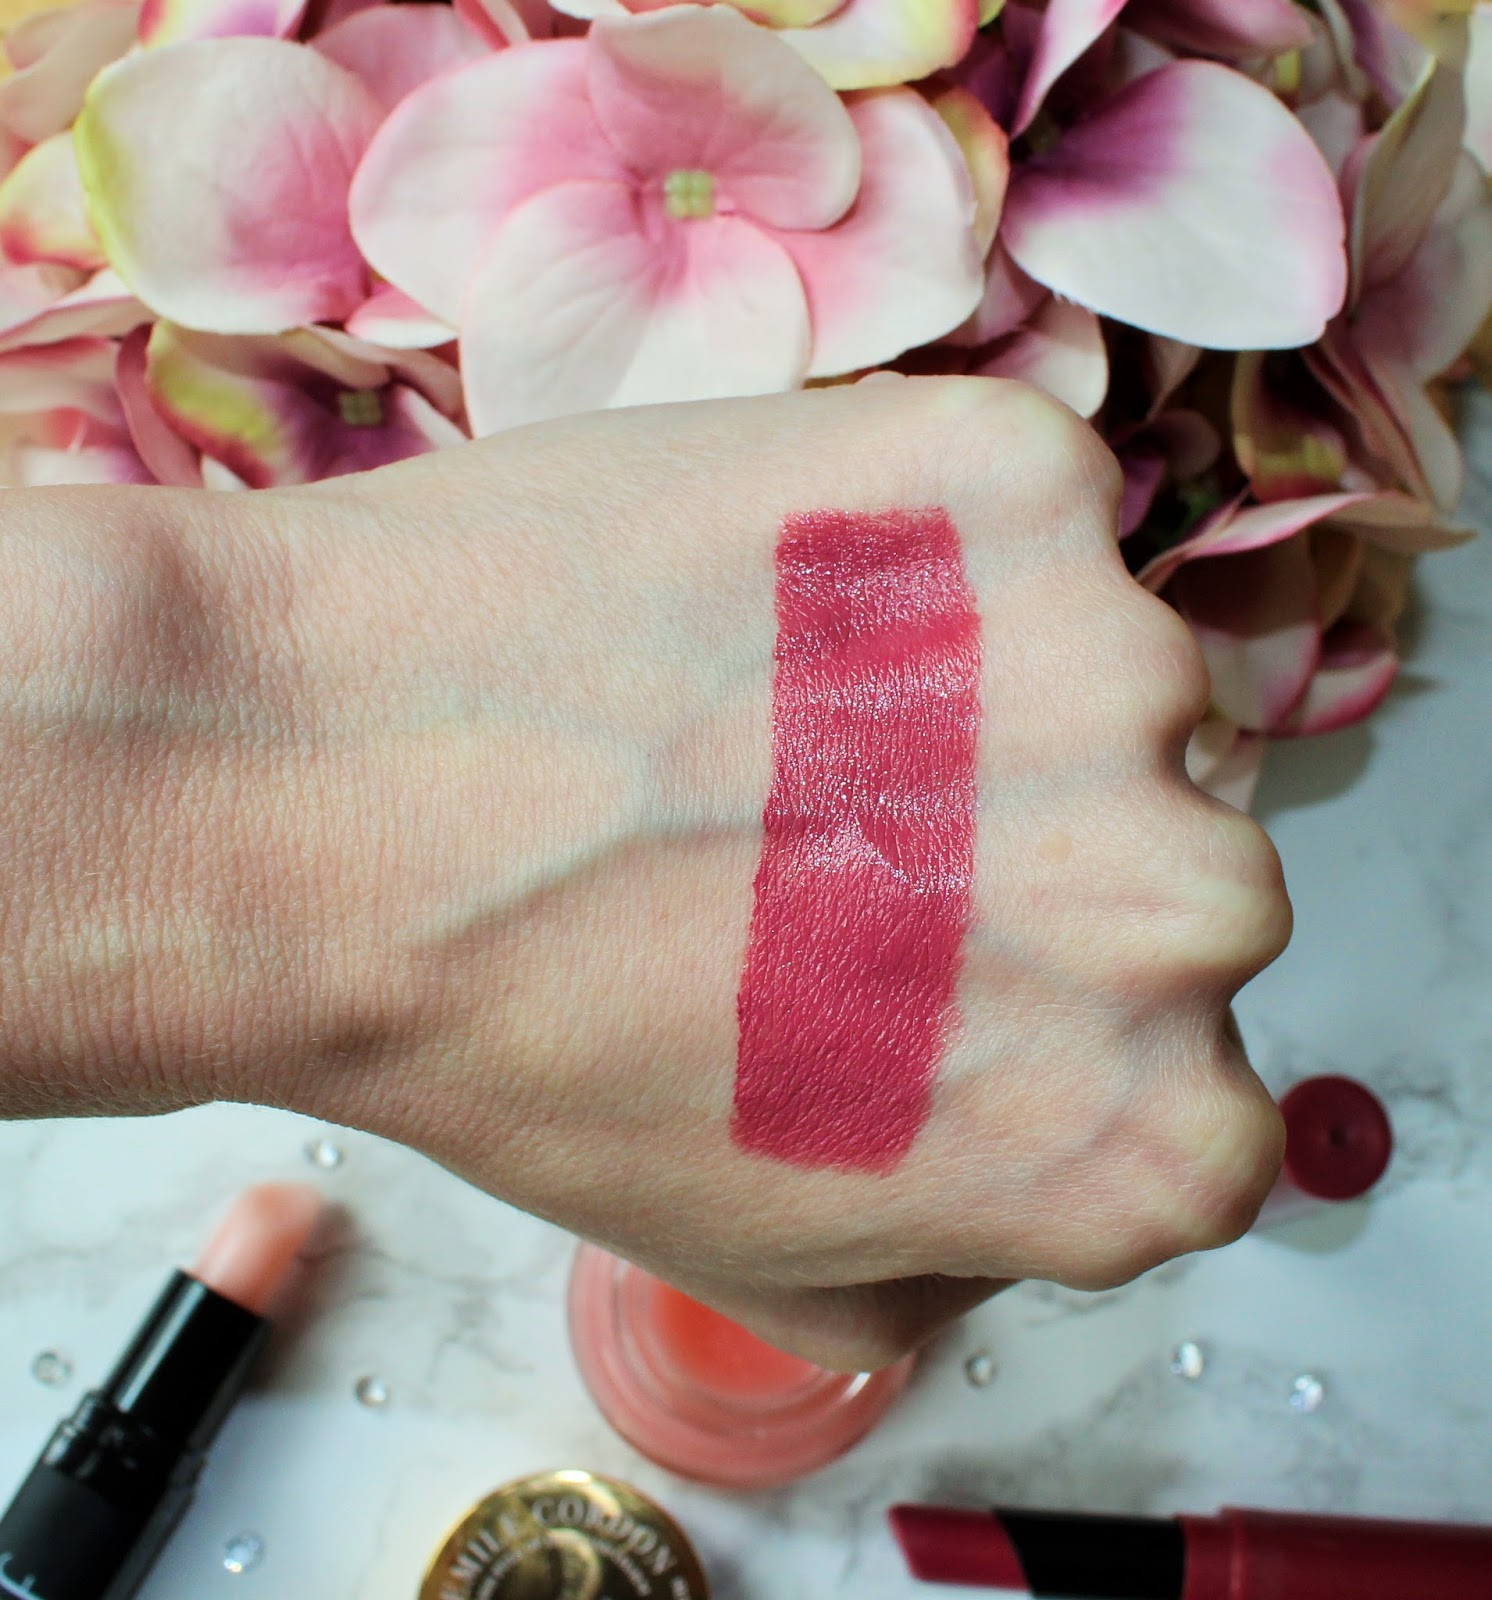 My Favourite Lip Care Products - 8 - Collection Lip Colours SPF 15 in Berry Blush